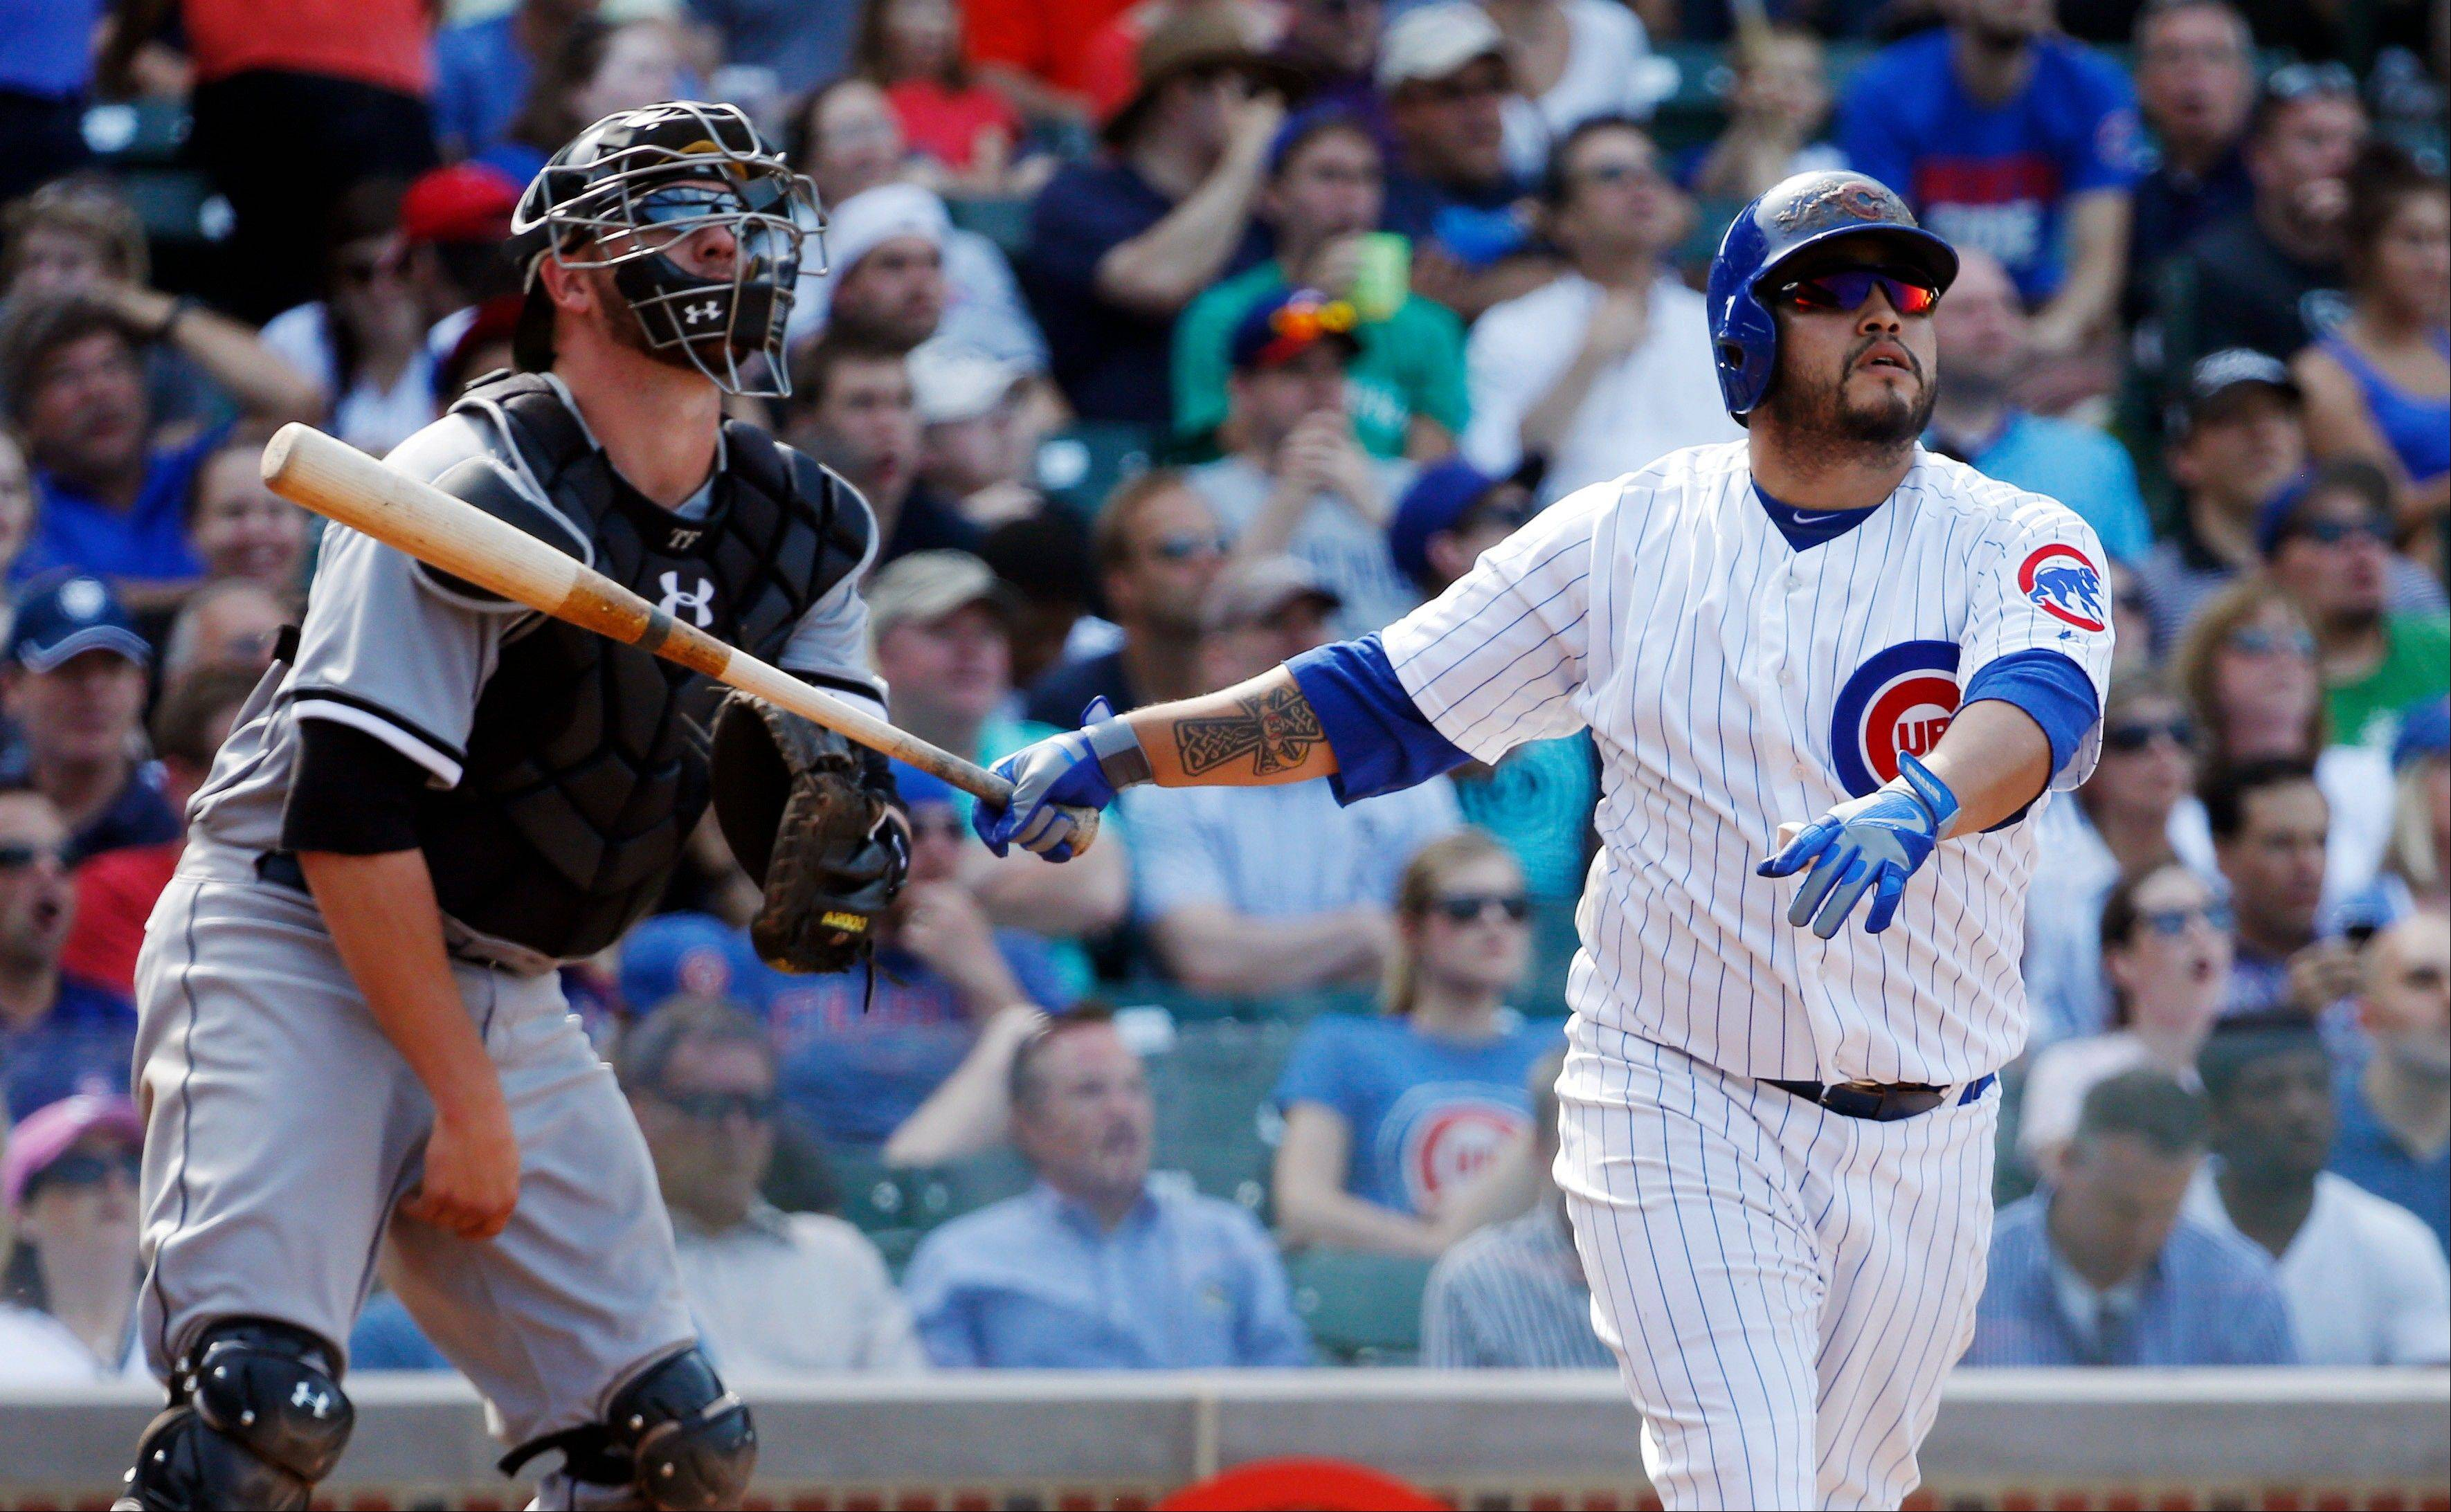 Chicago Cubs' Dioner Navarro, right, watches his three-run home run along with Chicago White Sox catcher Tyler Flowers during the seventh inning of a interleague baseball game Wednesday, May 29, 2013, in Chicago. It was Navarro's third home run of the game.